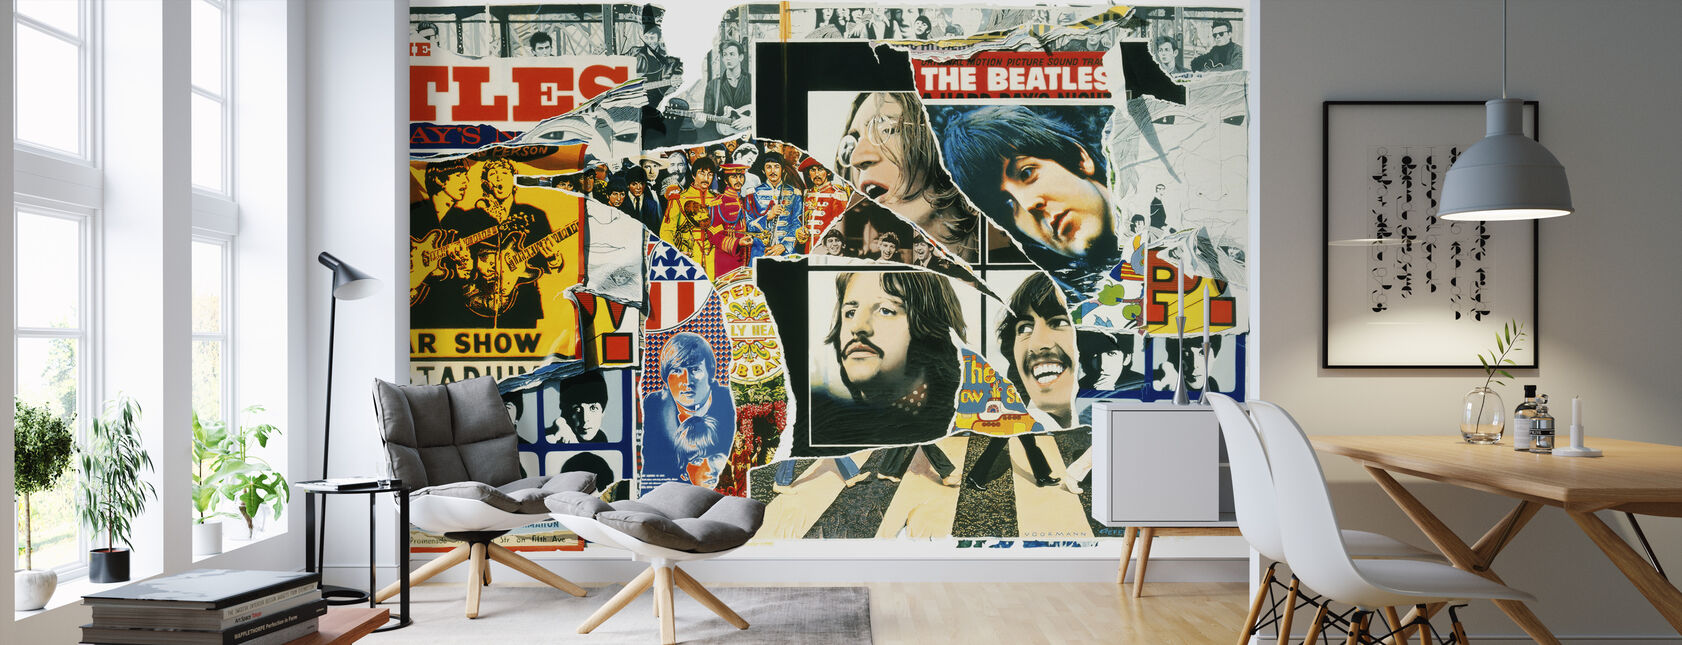 Beatles - Vintage Juliste Wall - Tapetti - Olohuone